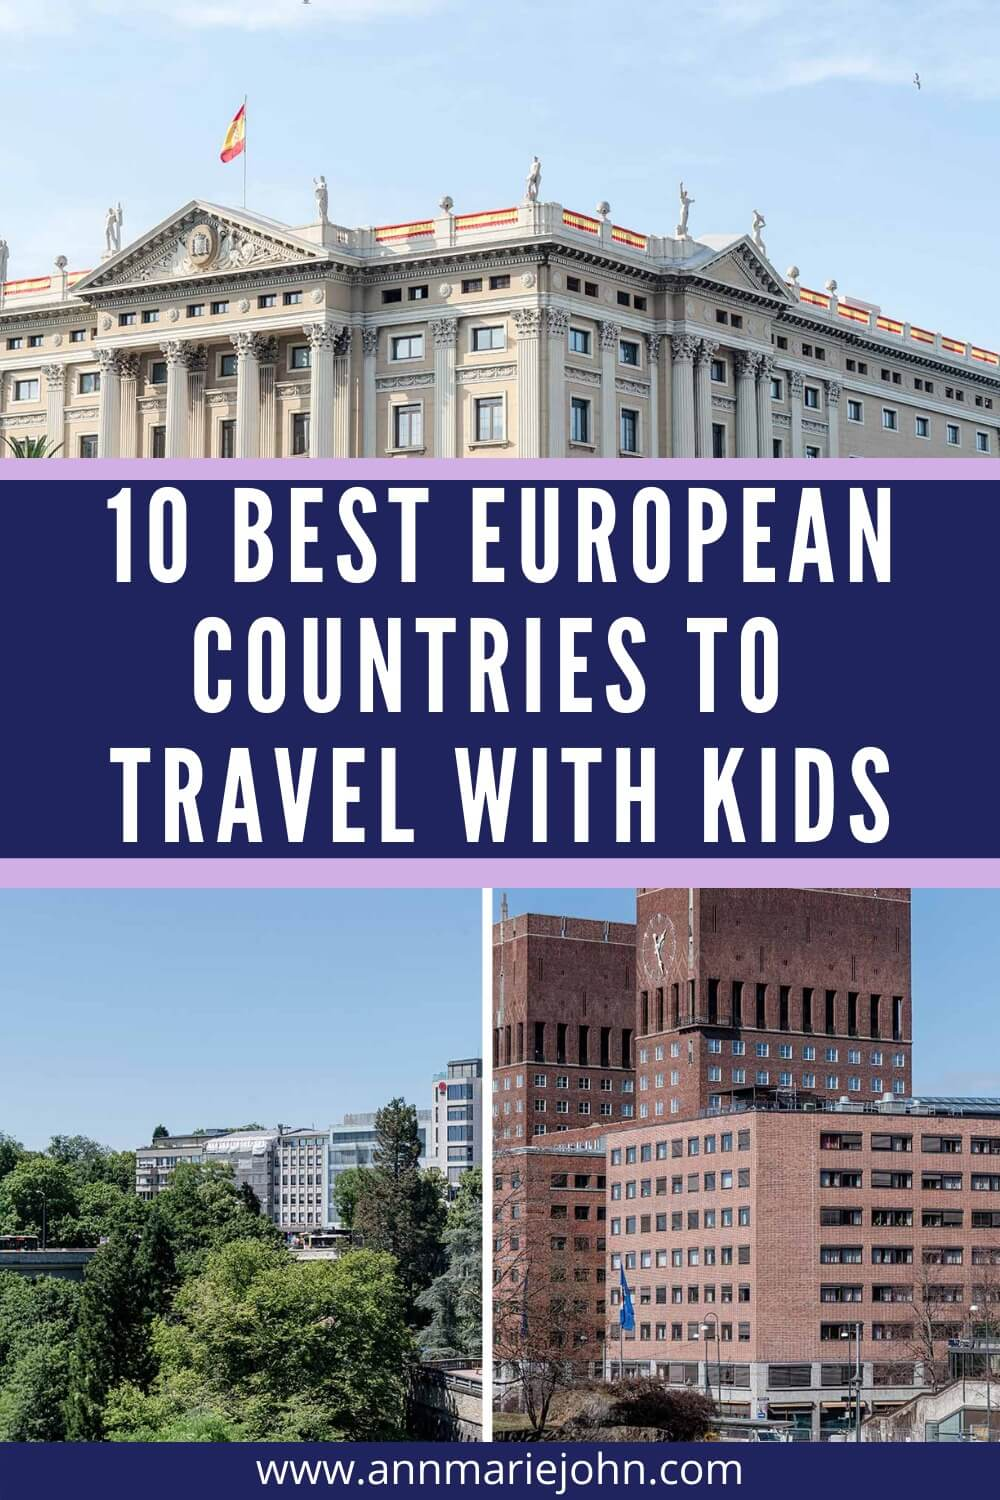 Ten Best European Countries to Travel With Kids